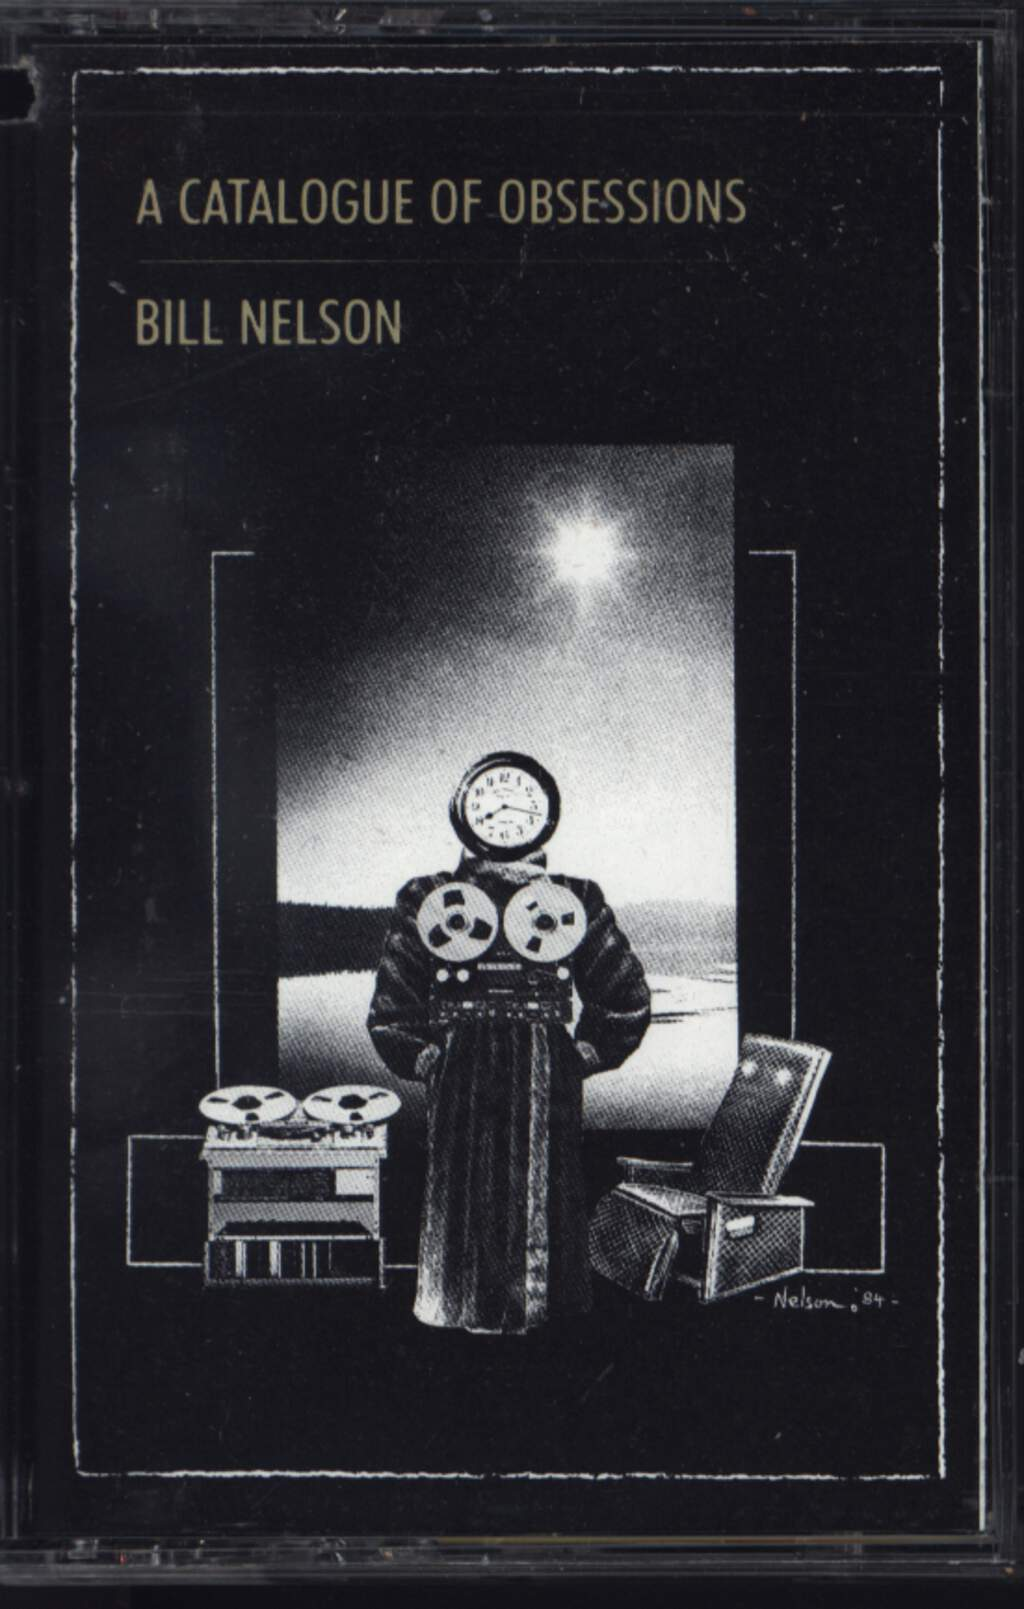 Bill Nelson: A Catalogue of Obsessions, Compact Cassette